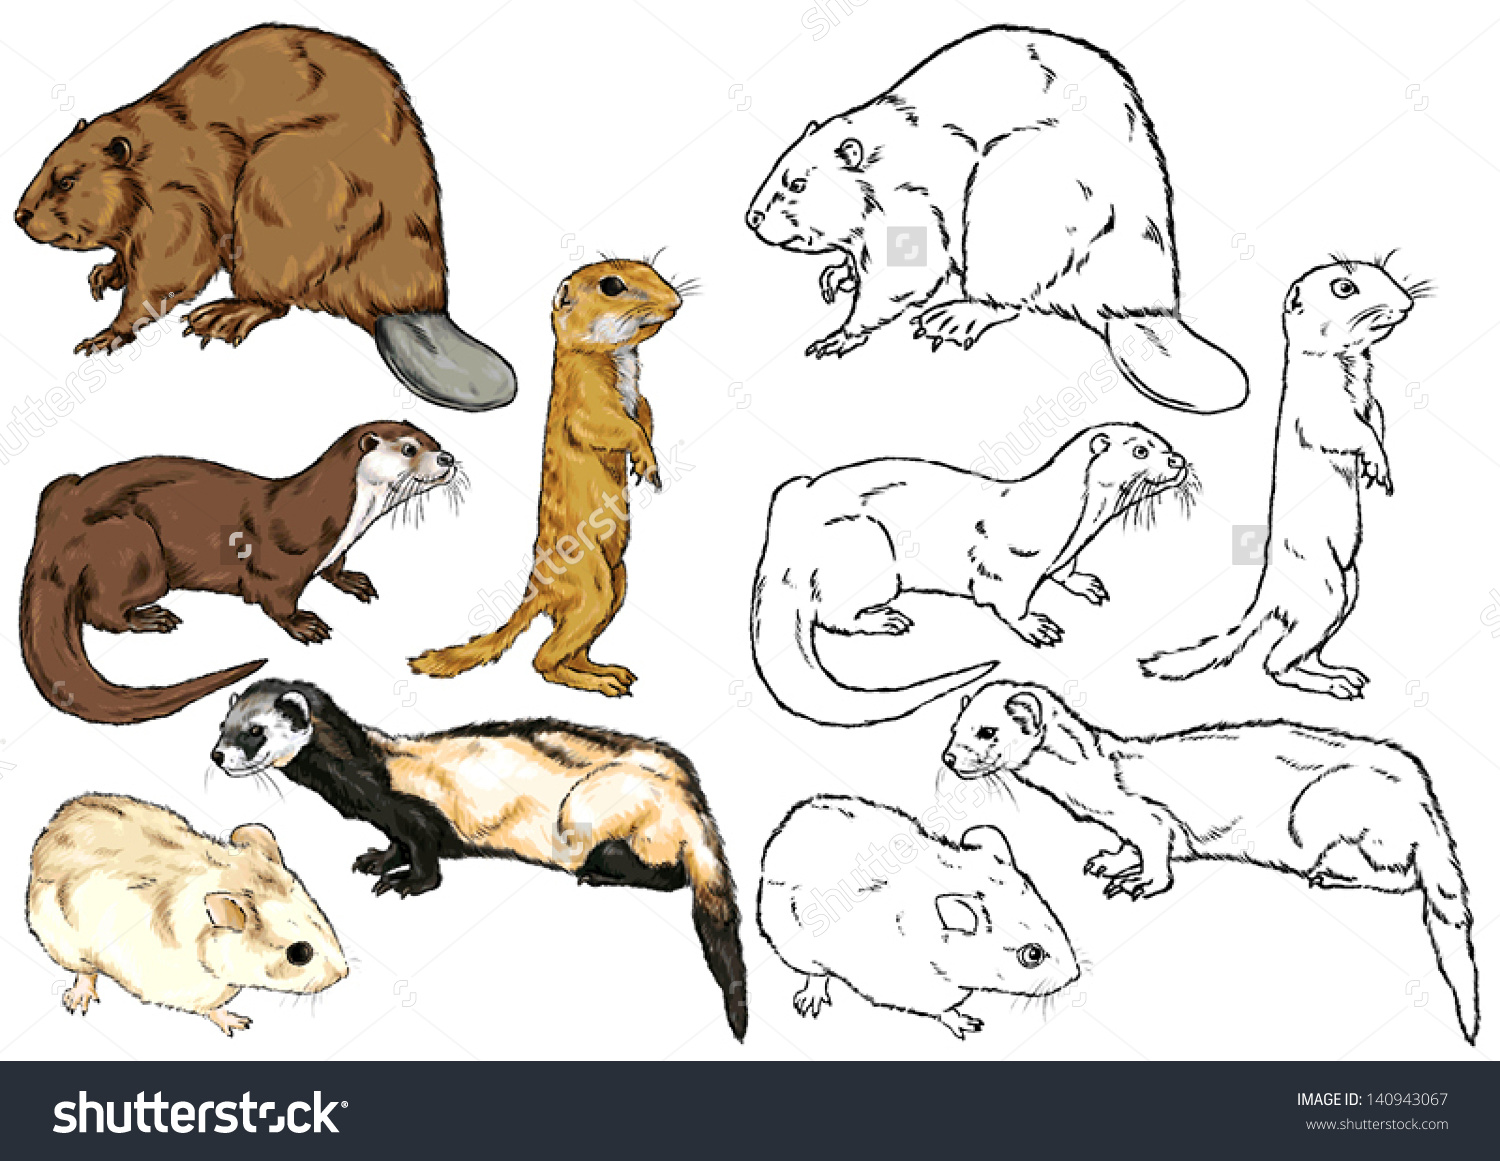 Drawing Contour Wild Animal Species Living Stock Vector 140943067.